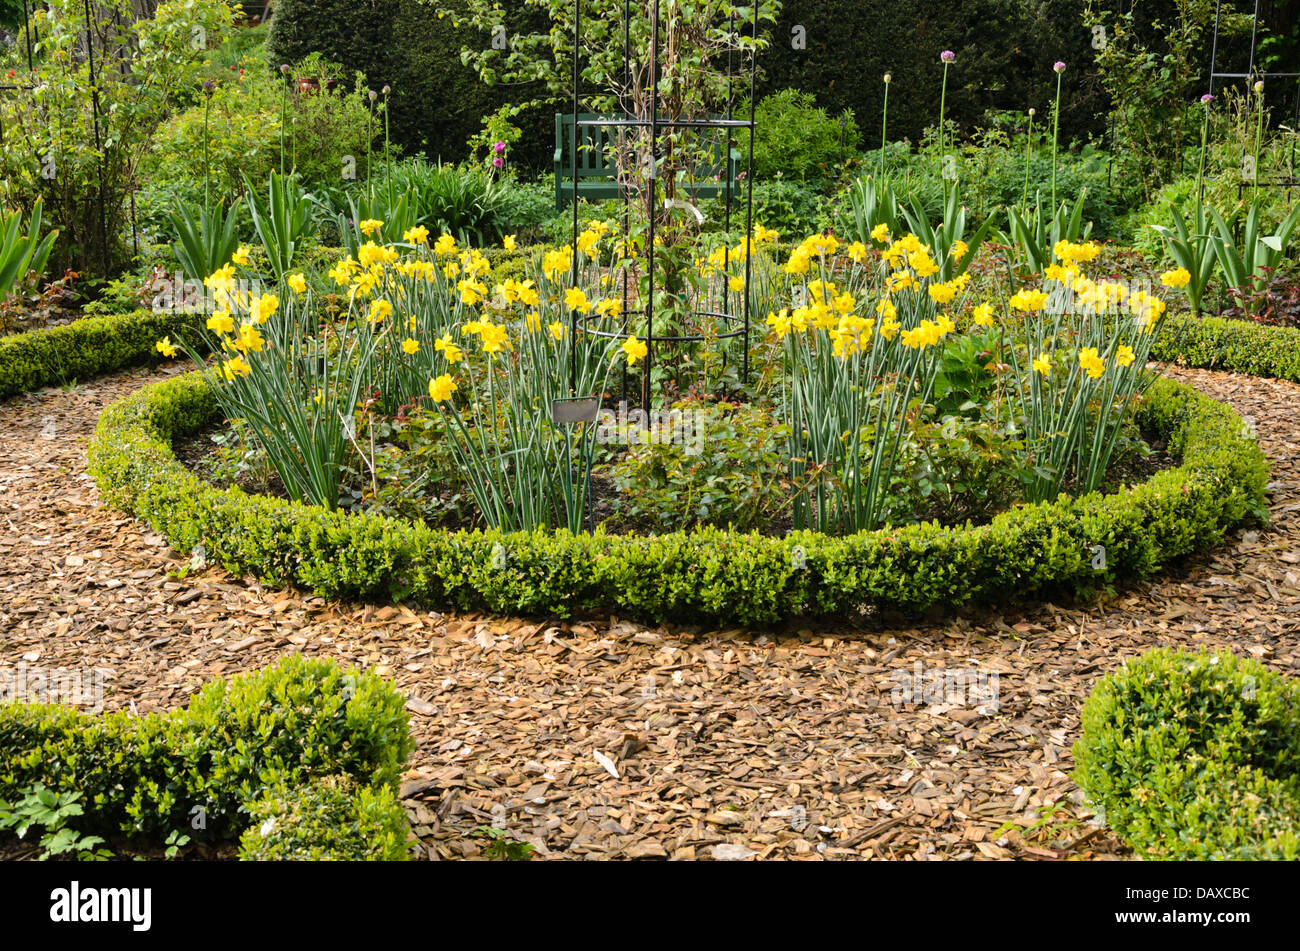 ... Daffodils (Narcissus) And Boxwood (Buxus) In A Rose Garden. Design: